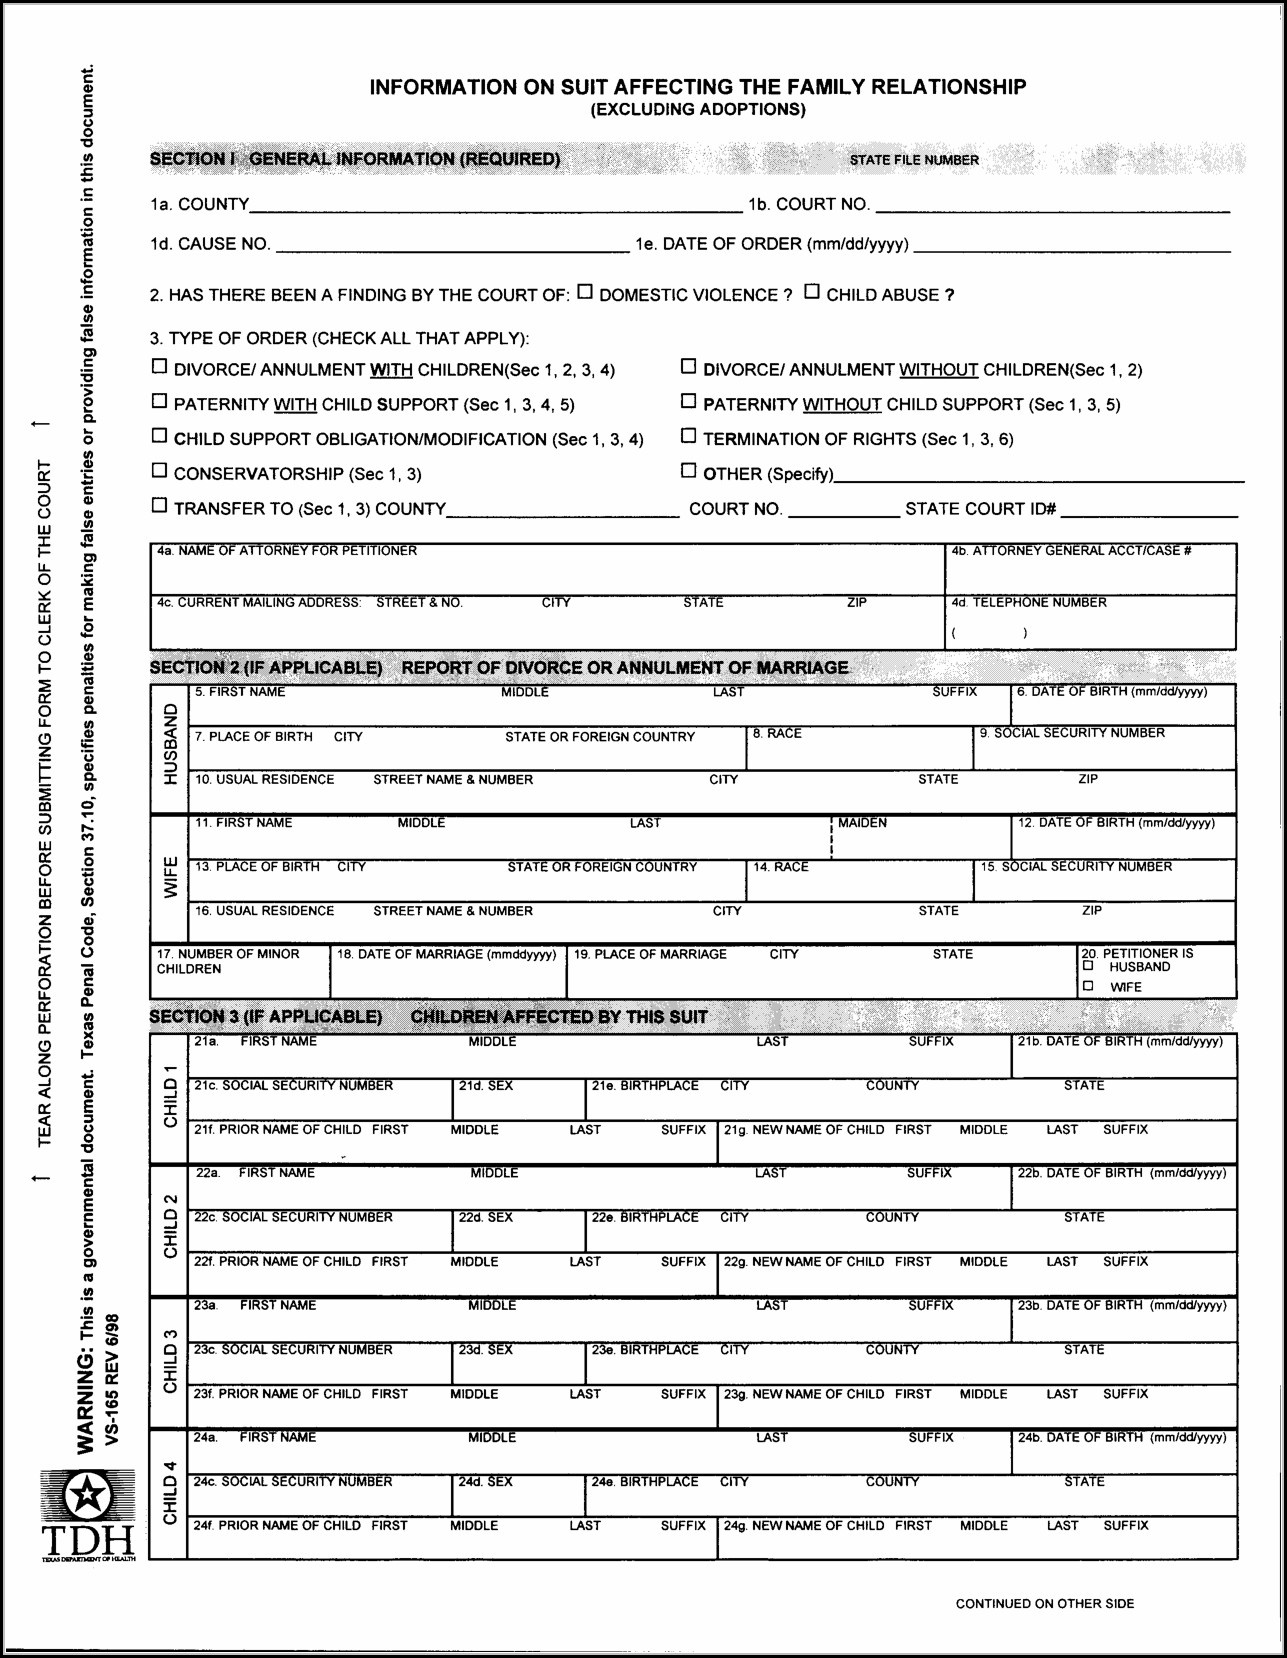 Free Printable Divorce Forms Texas - Form : Resume Examples #n48Mzeb1Yz - Free Printable Divorce Forms Texas